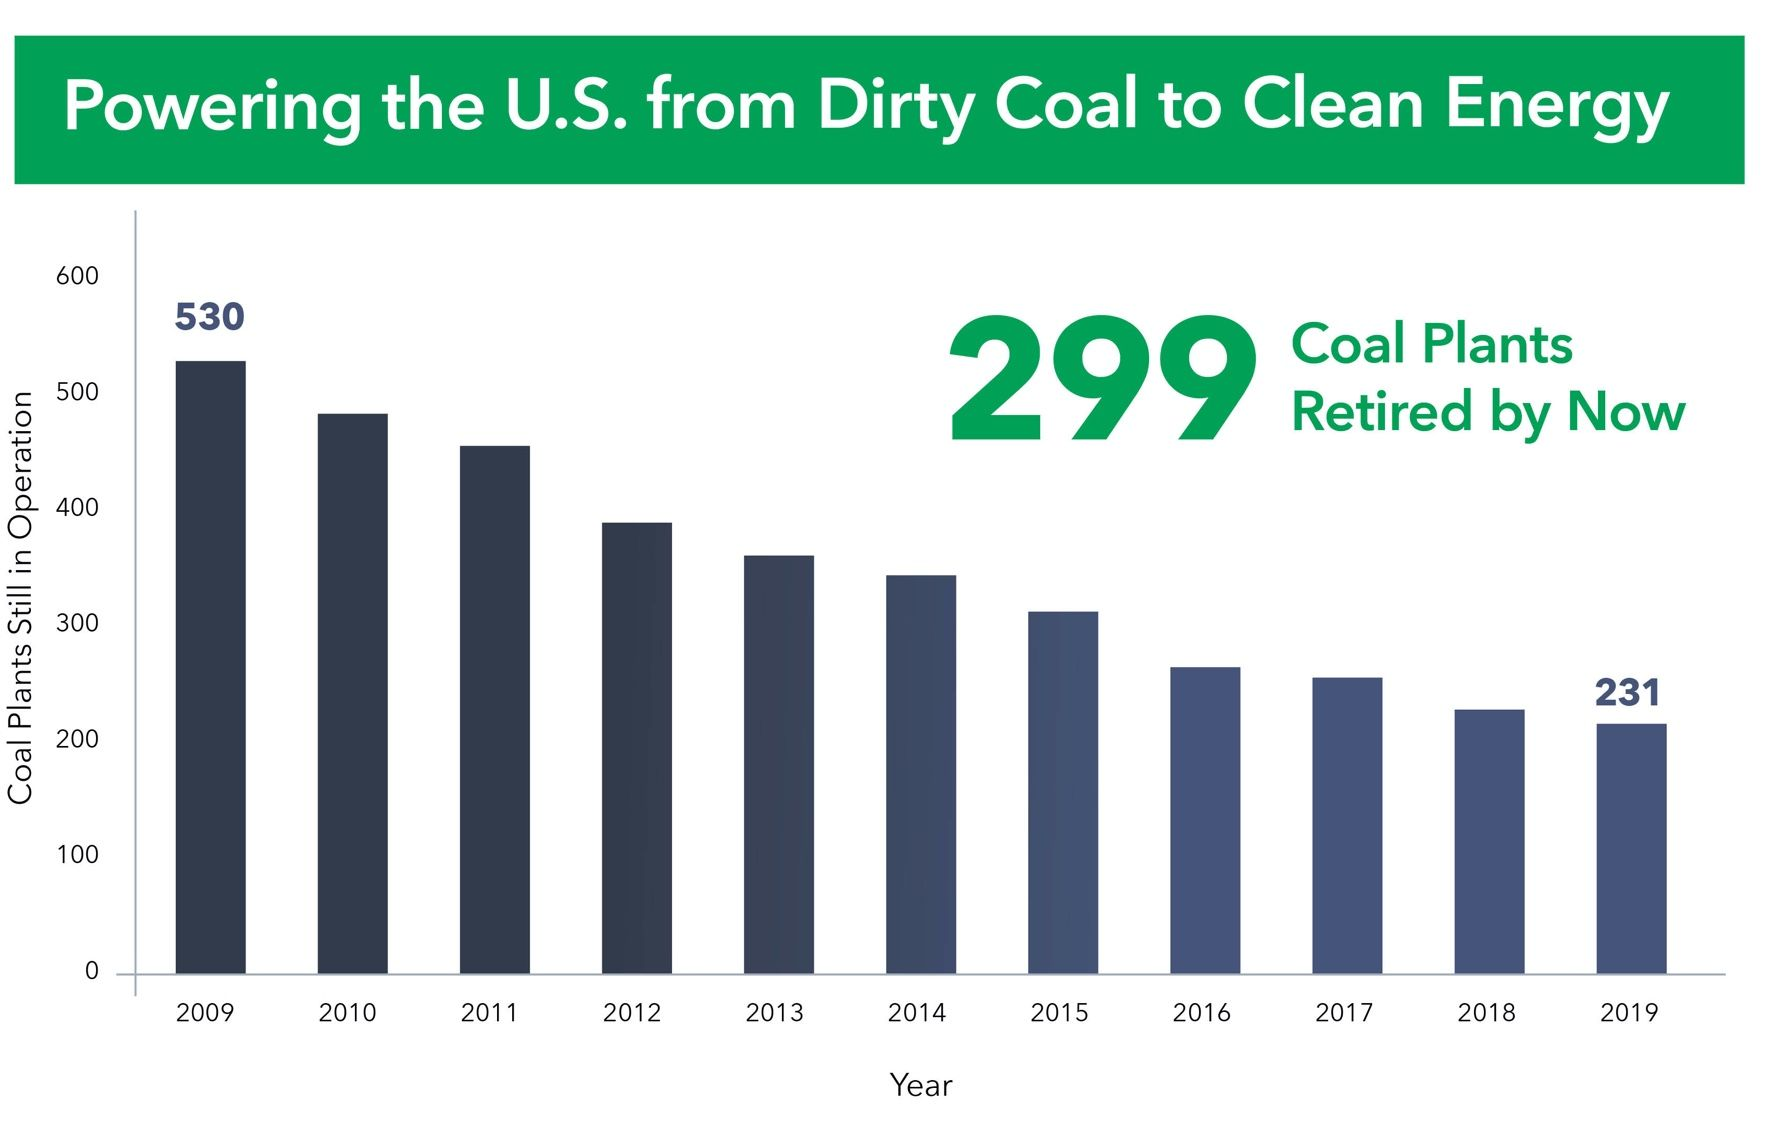 Powering the U.S. from Dirty Coal to Clean Energy